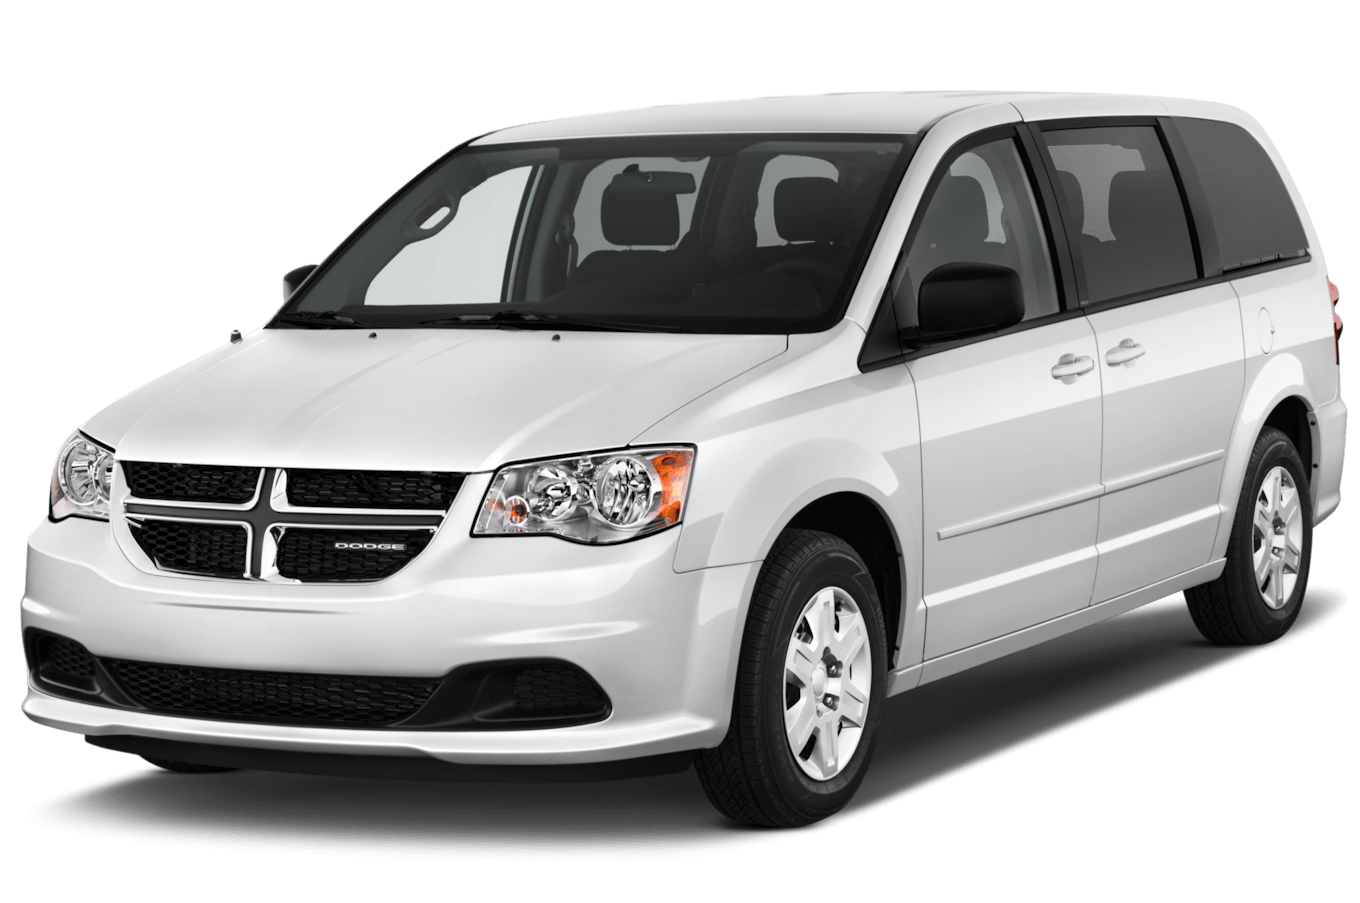 hight resolution of 2014 dodge grand caravan fuse diagram wiring library new 2012 dodge caravan and chrysler town country 36 fuse box